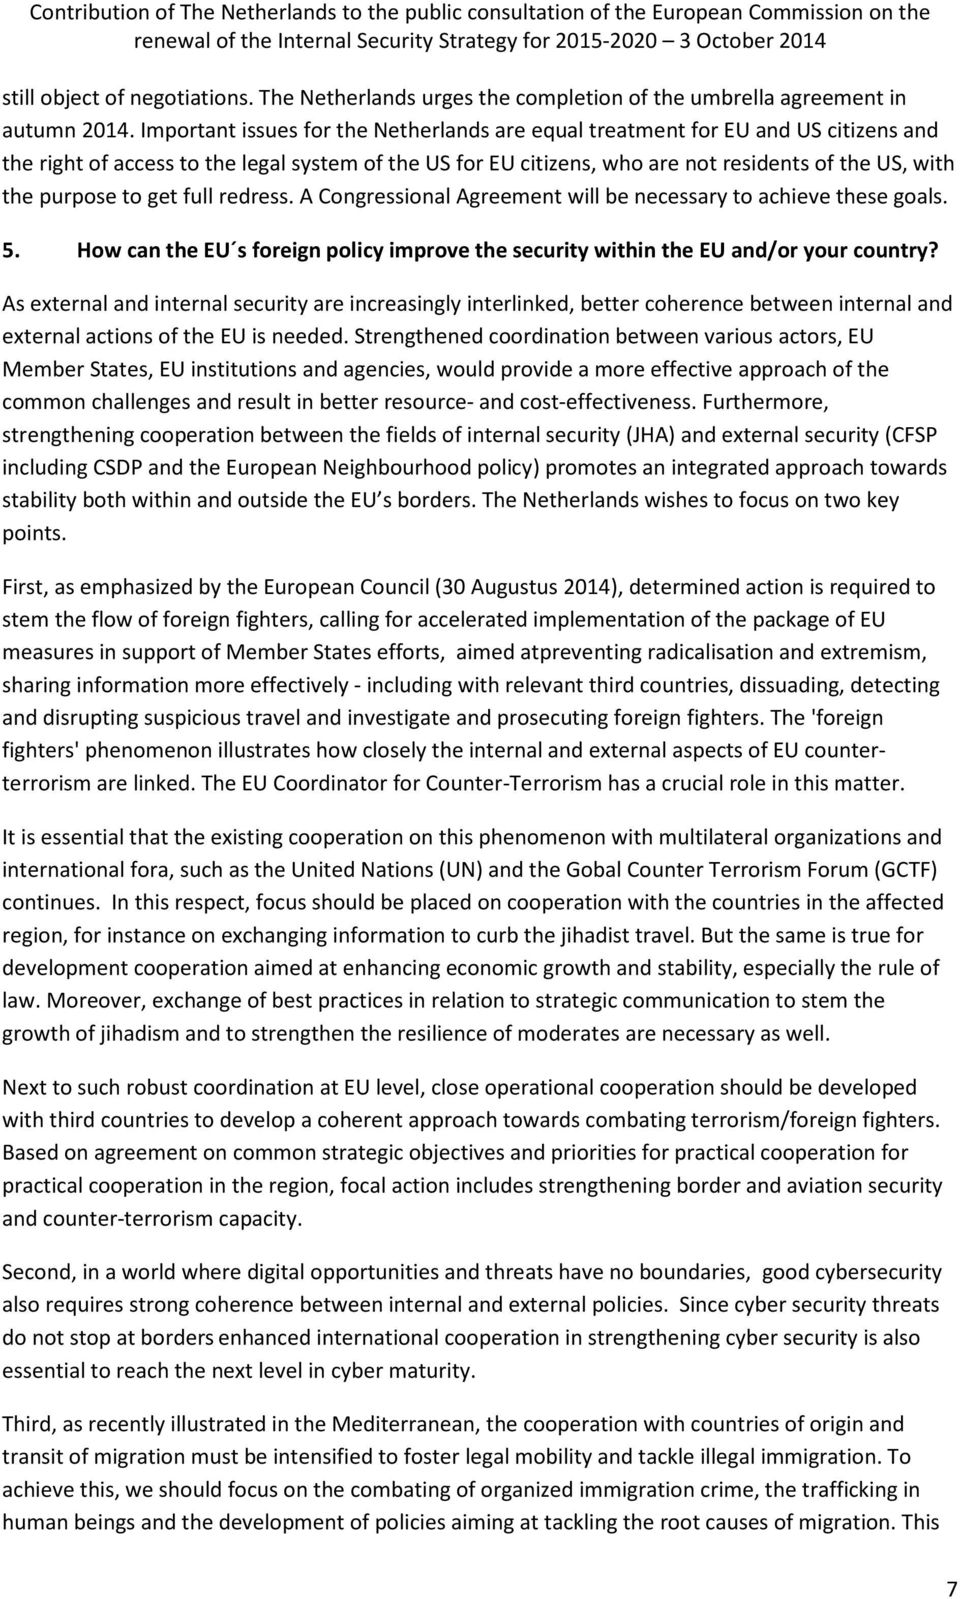 purpose to get full redress. A Congressional Agreement will be necessary to achieve these goals. 5. How can the EU s foreign policy improve the security within the EU and/or your country?